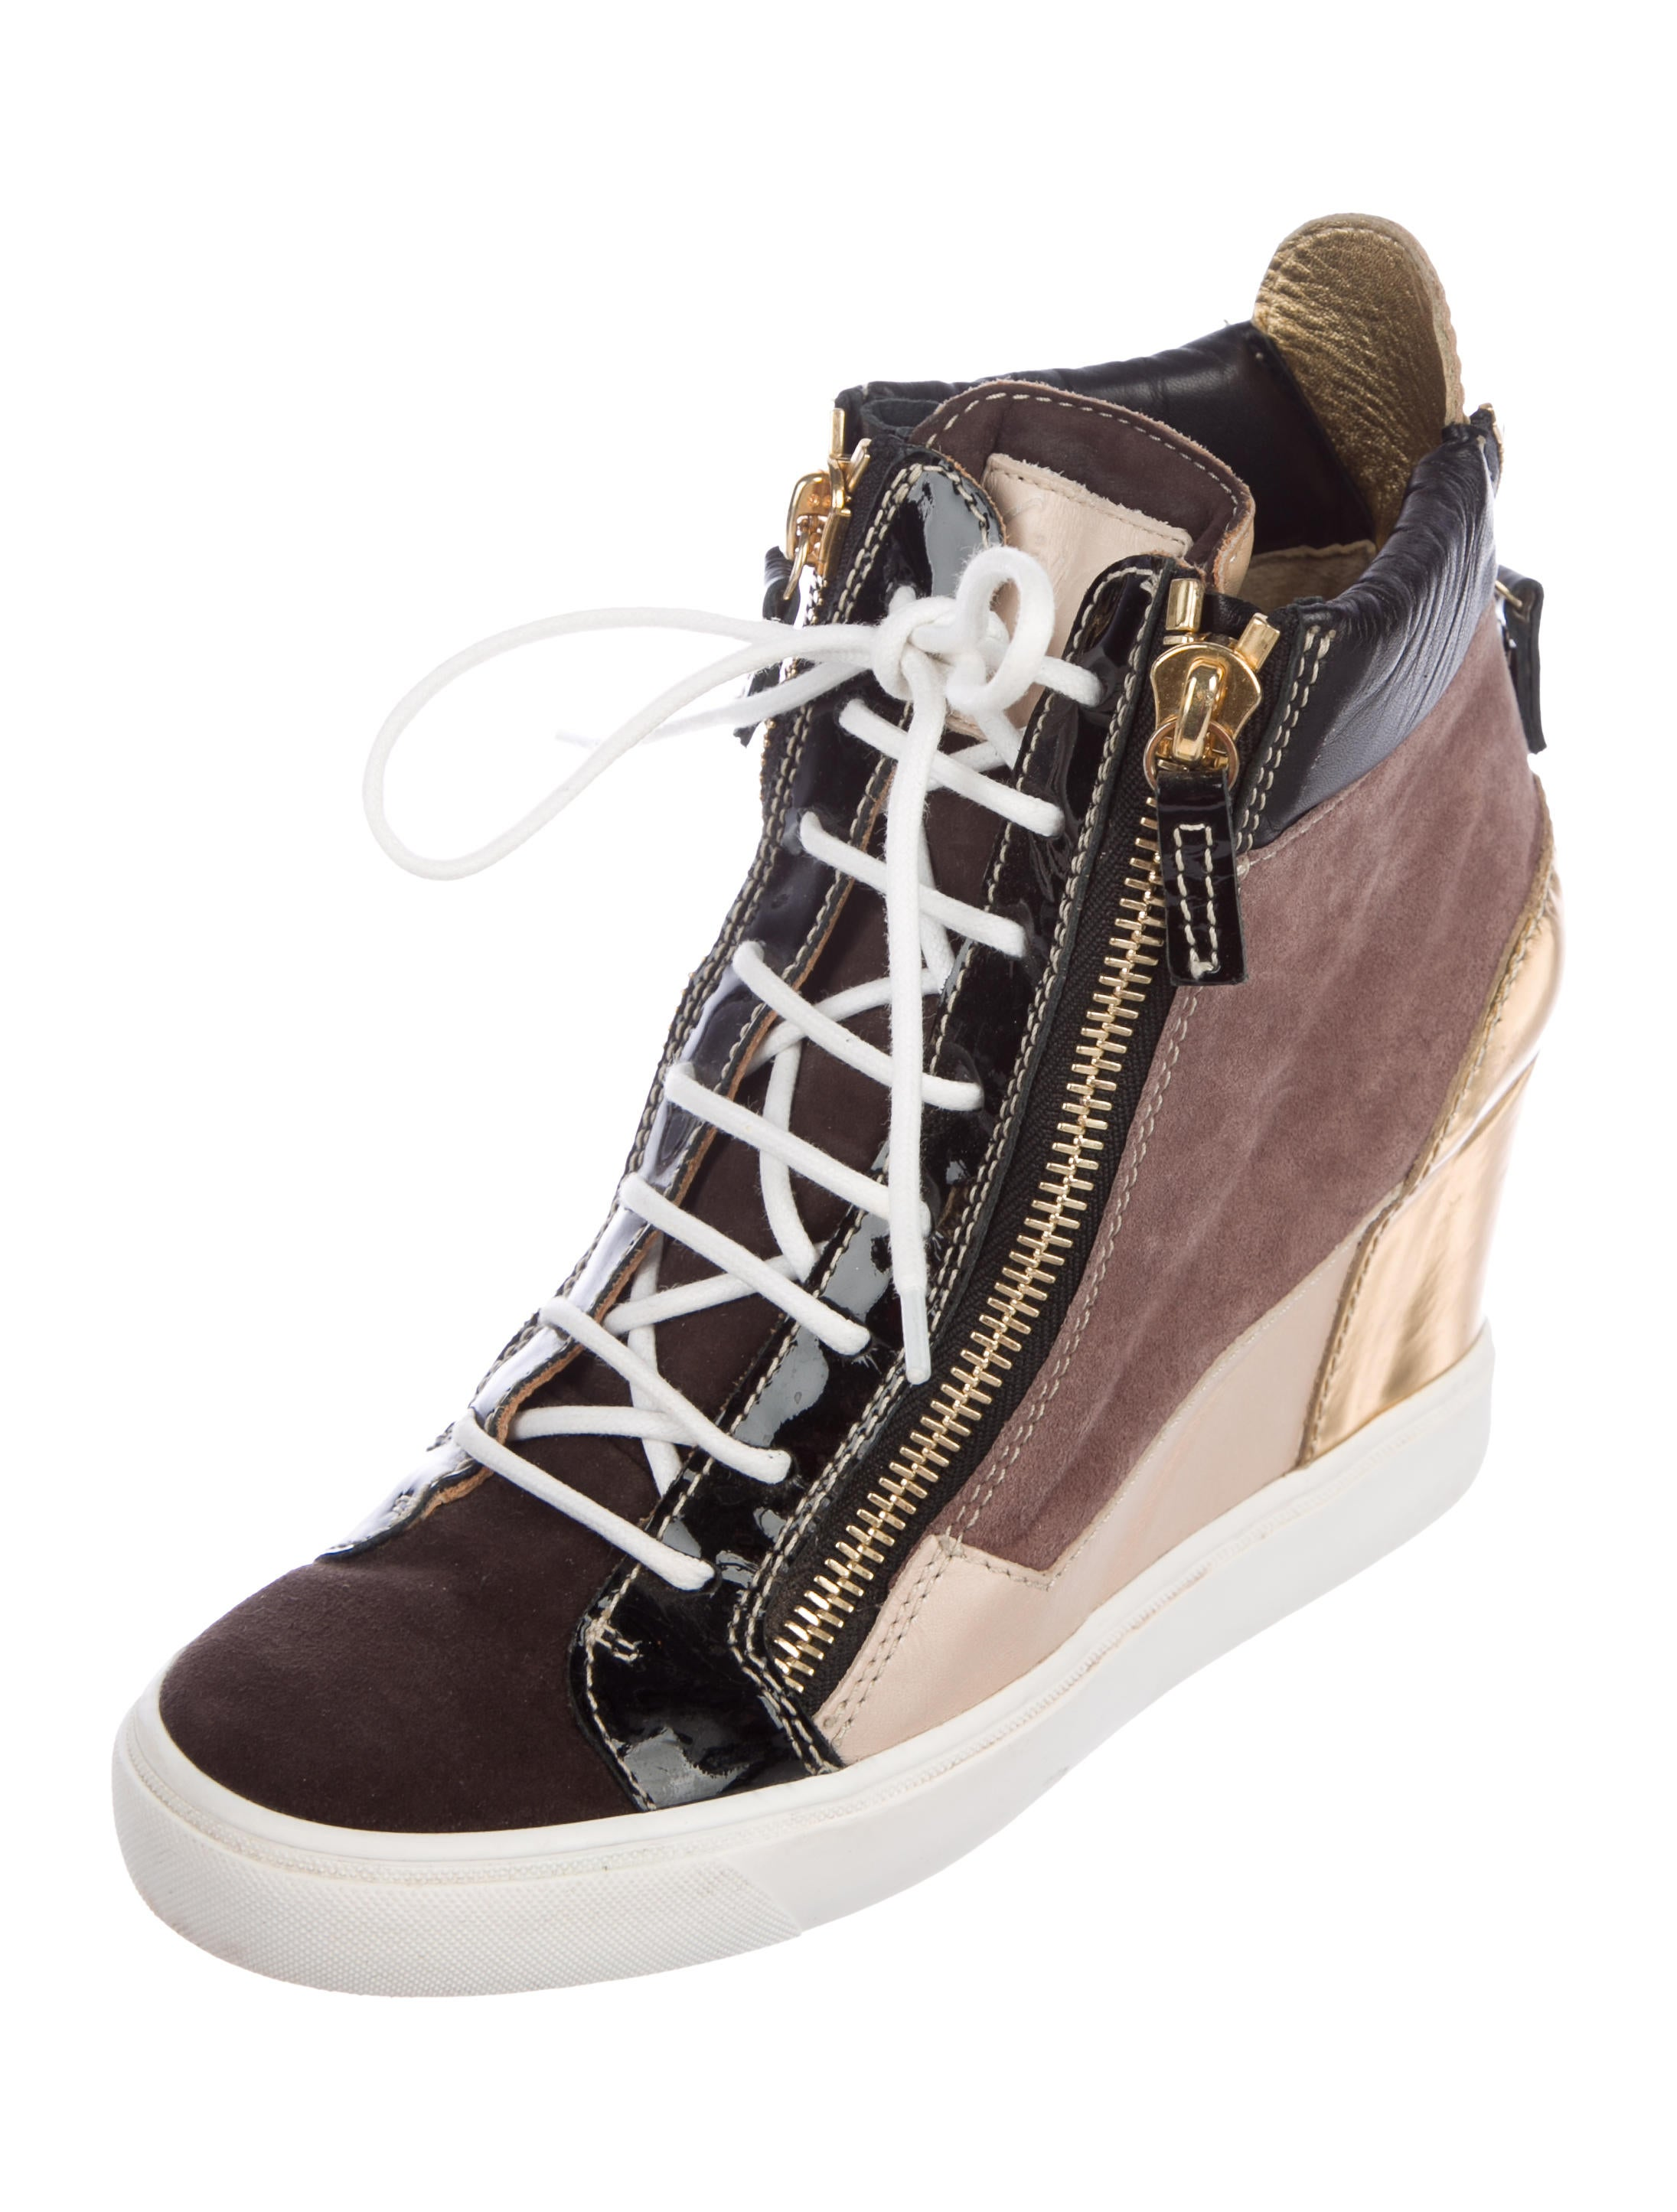 Giuseppe Zanotti Lorenz 75 Patchwork Sneakers buy cheap online websites sale online cheap best store to get D03oW